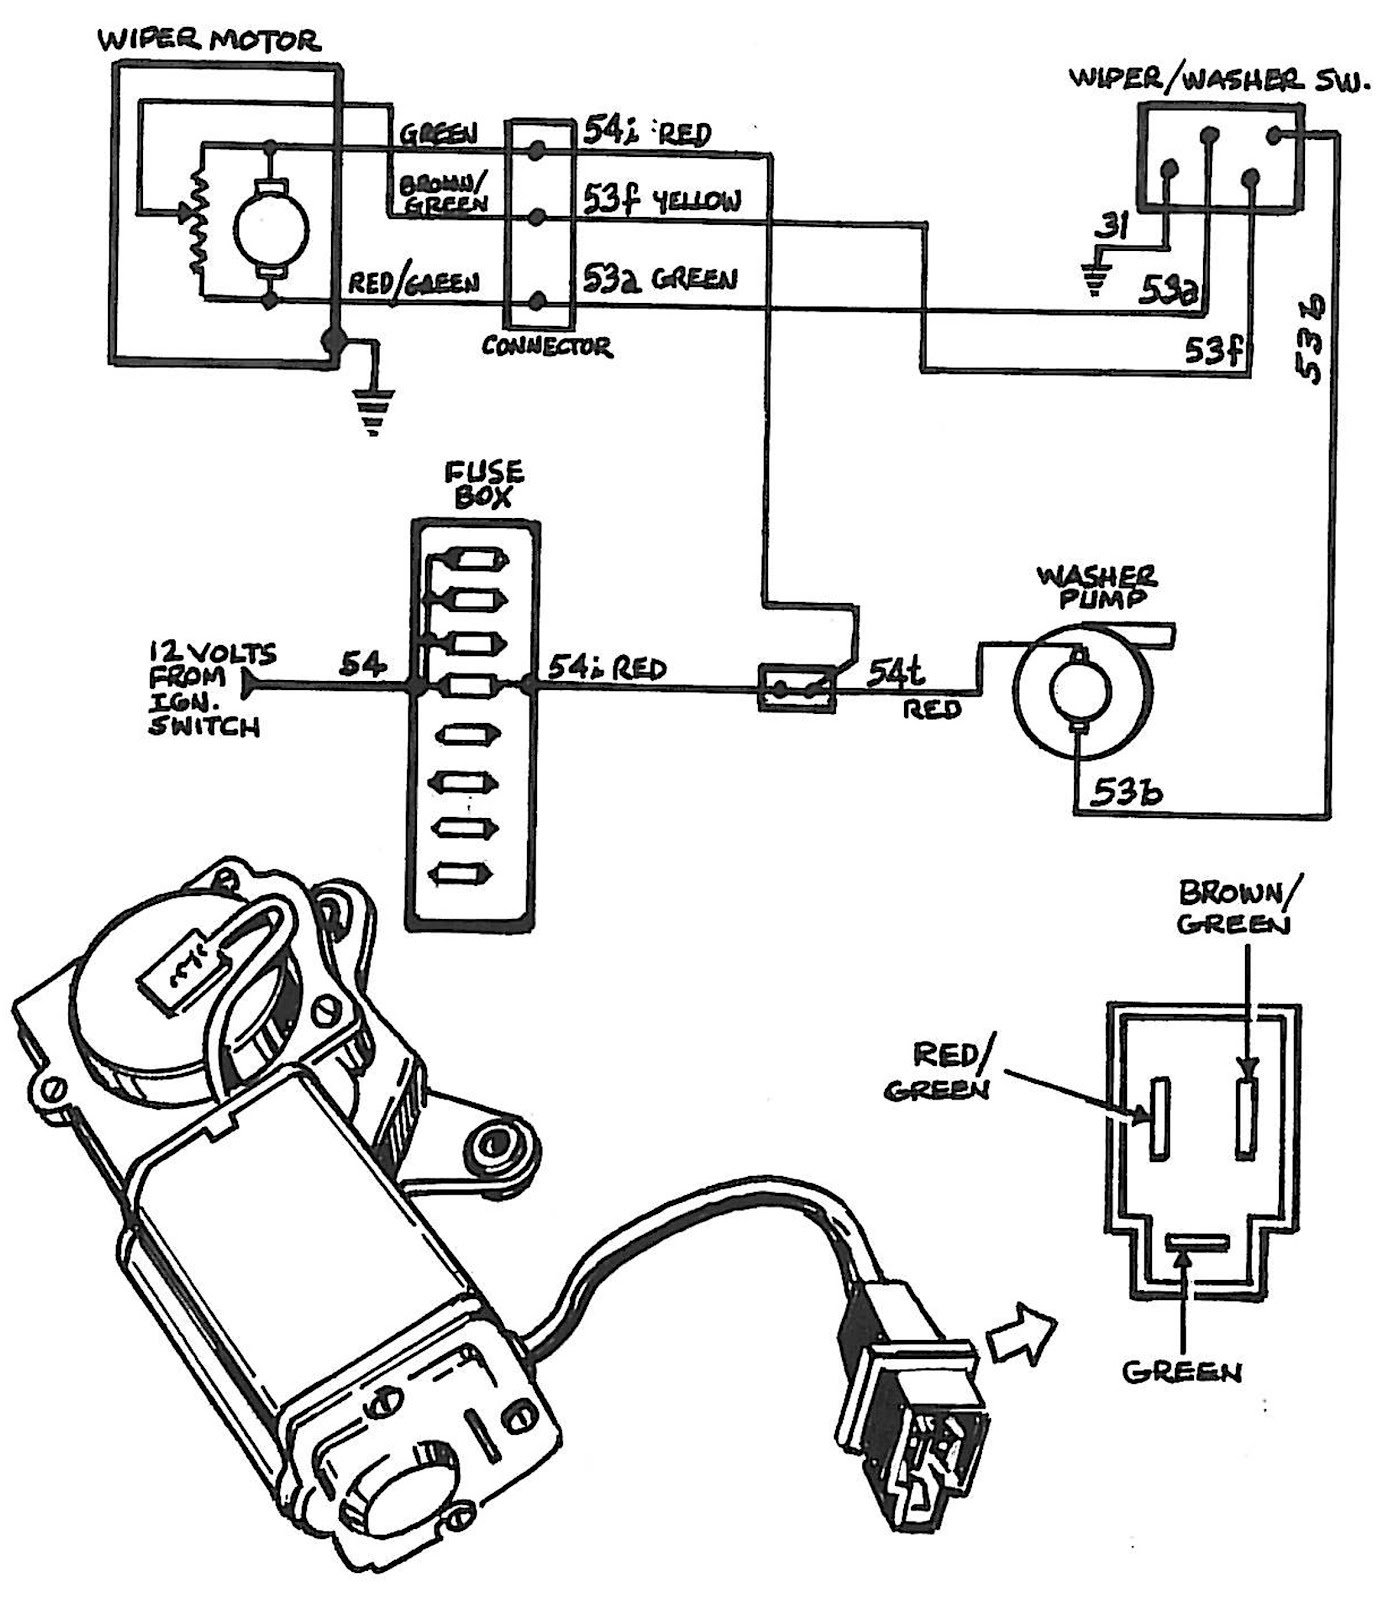 67 Chevy Truck Wiring Diagram from motogurumag.com